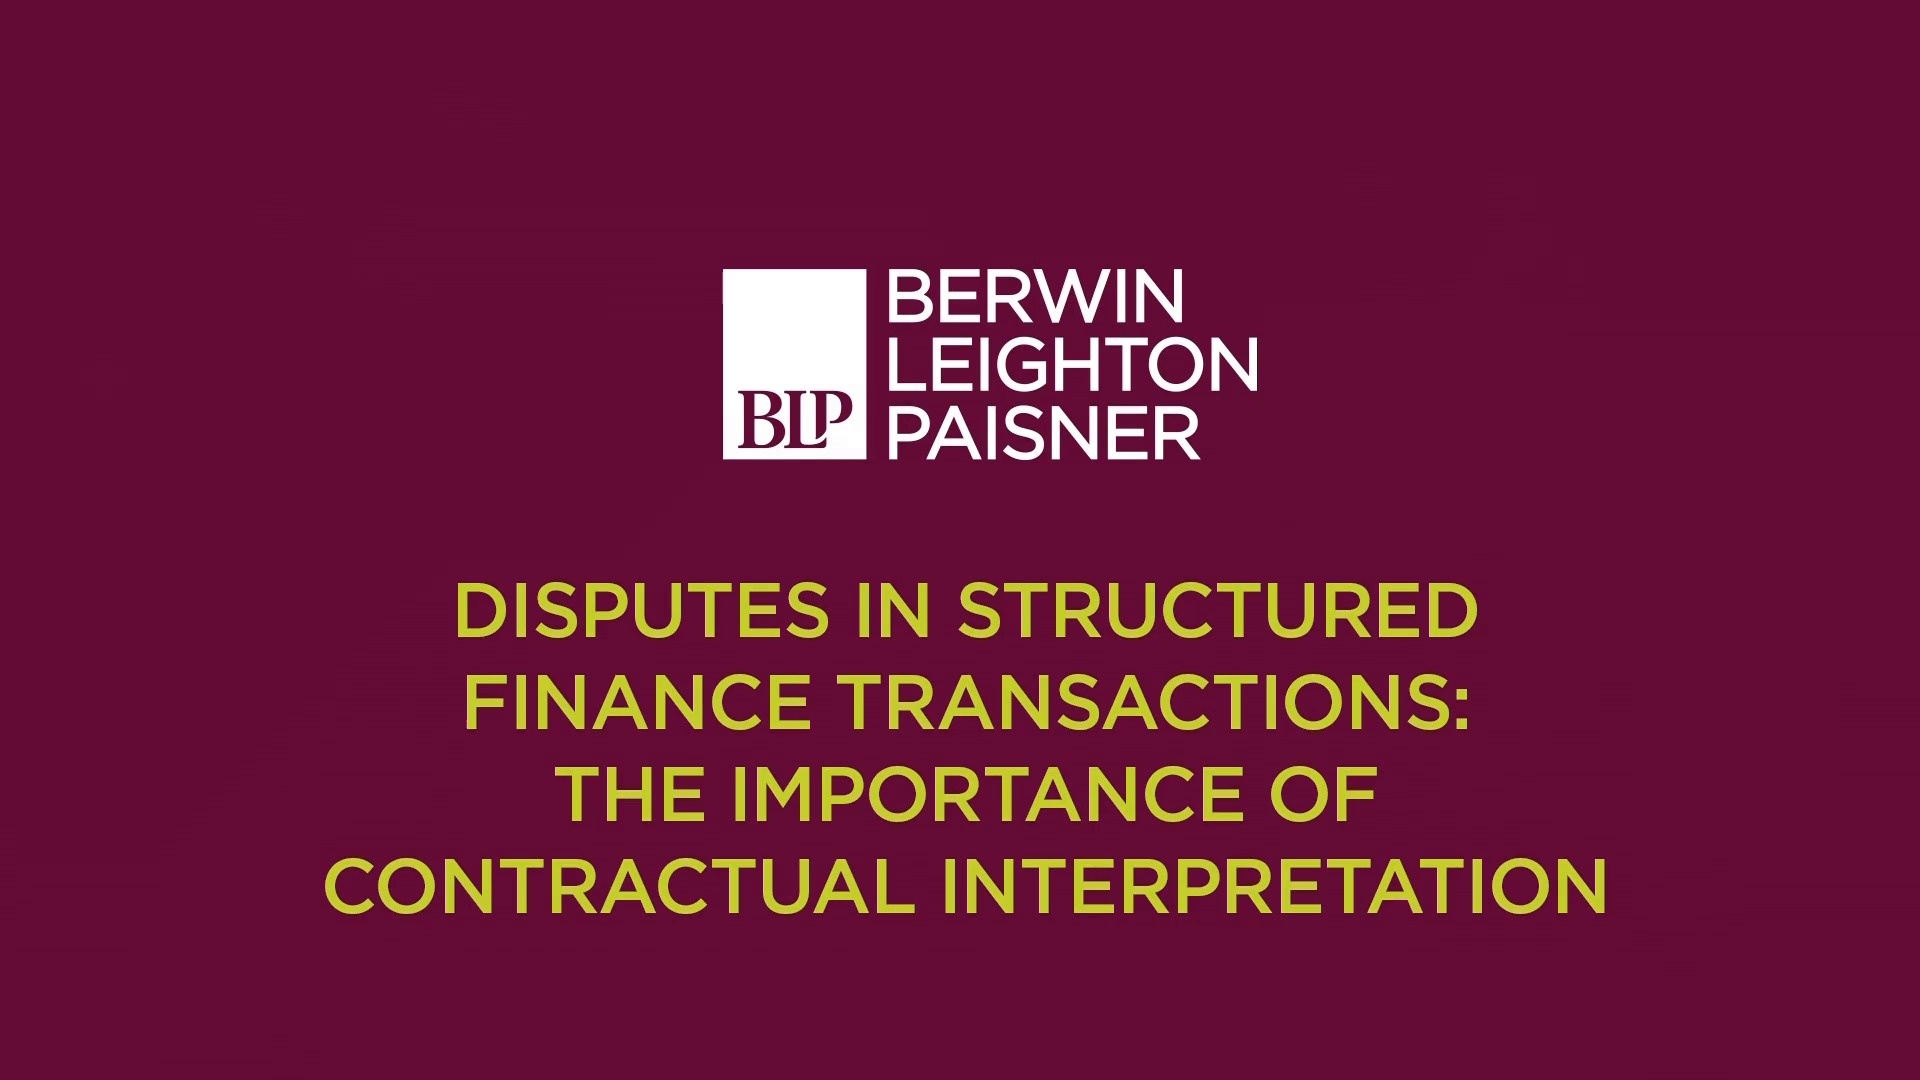 Still image from 'Interpreting contracts in structured finance transaction disputes' video